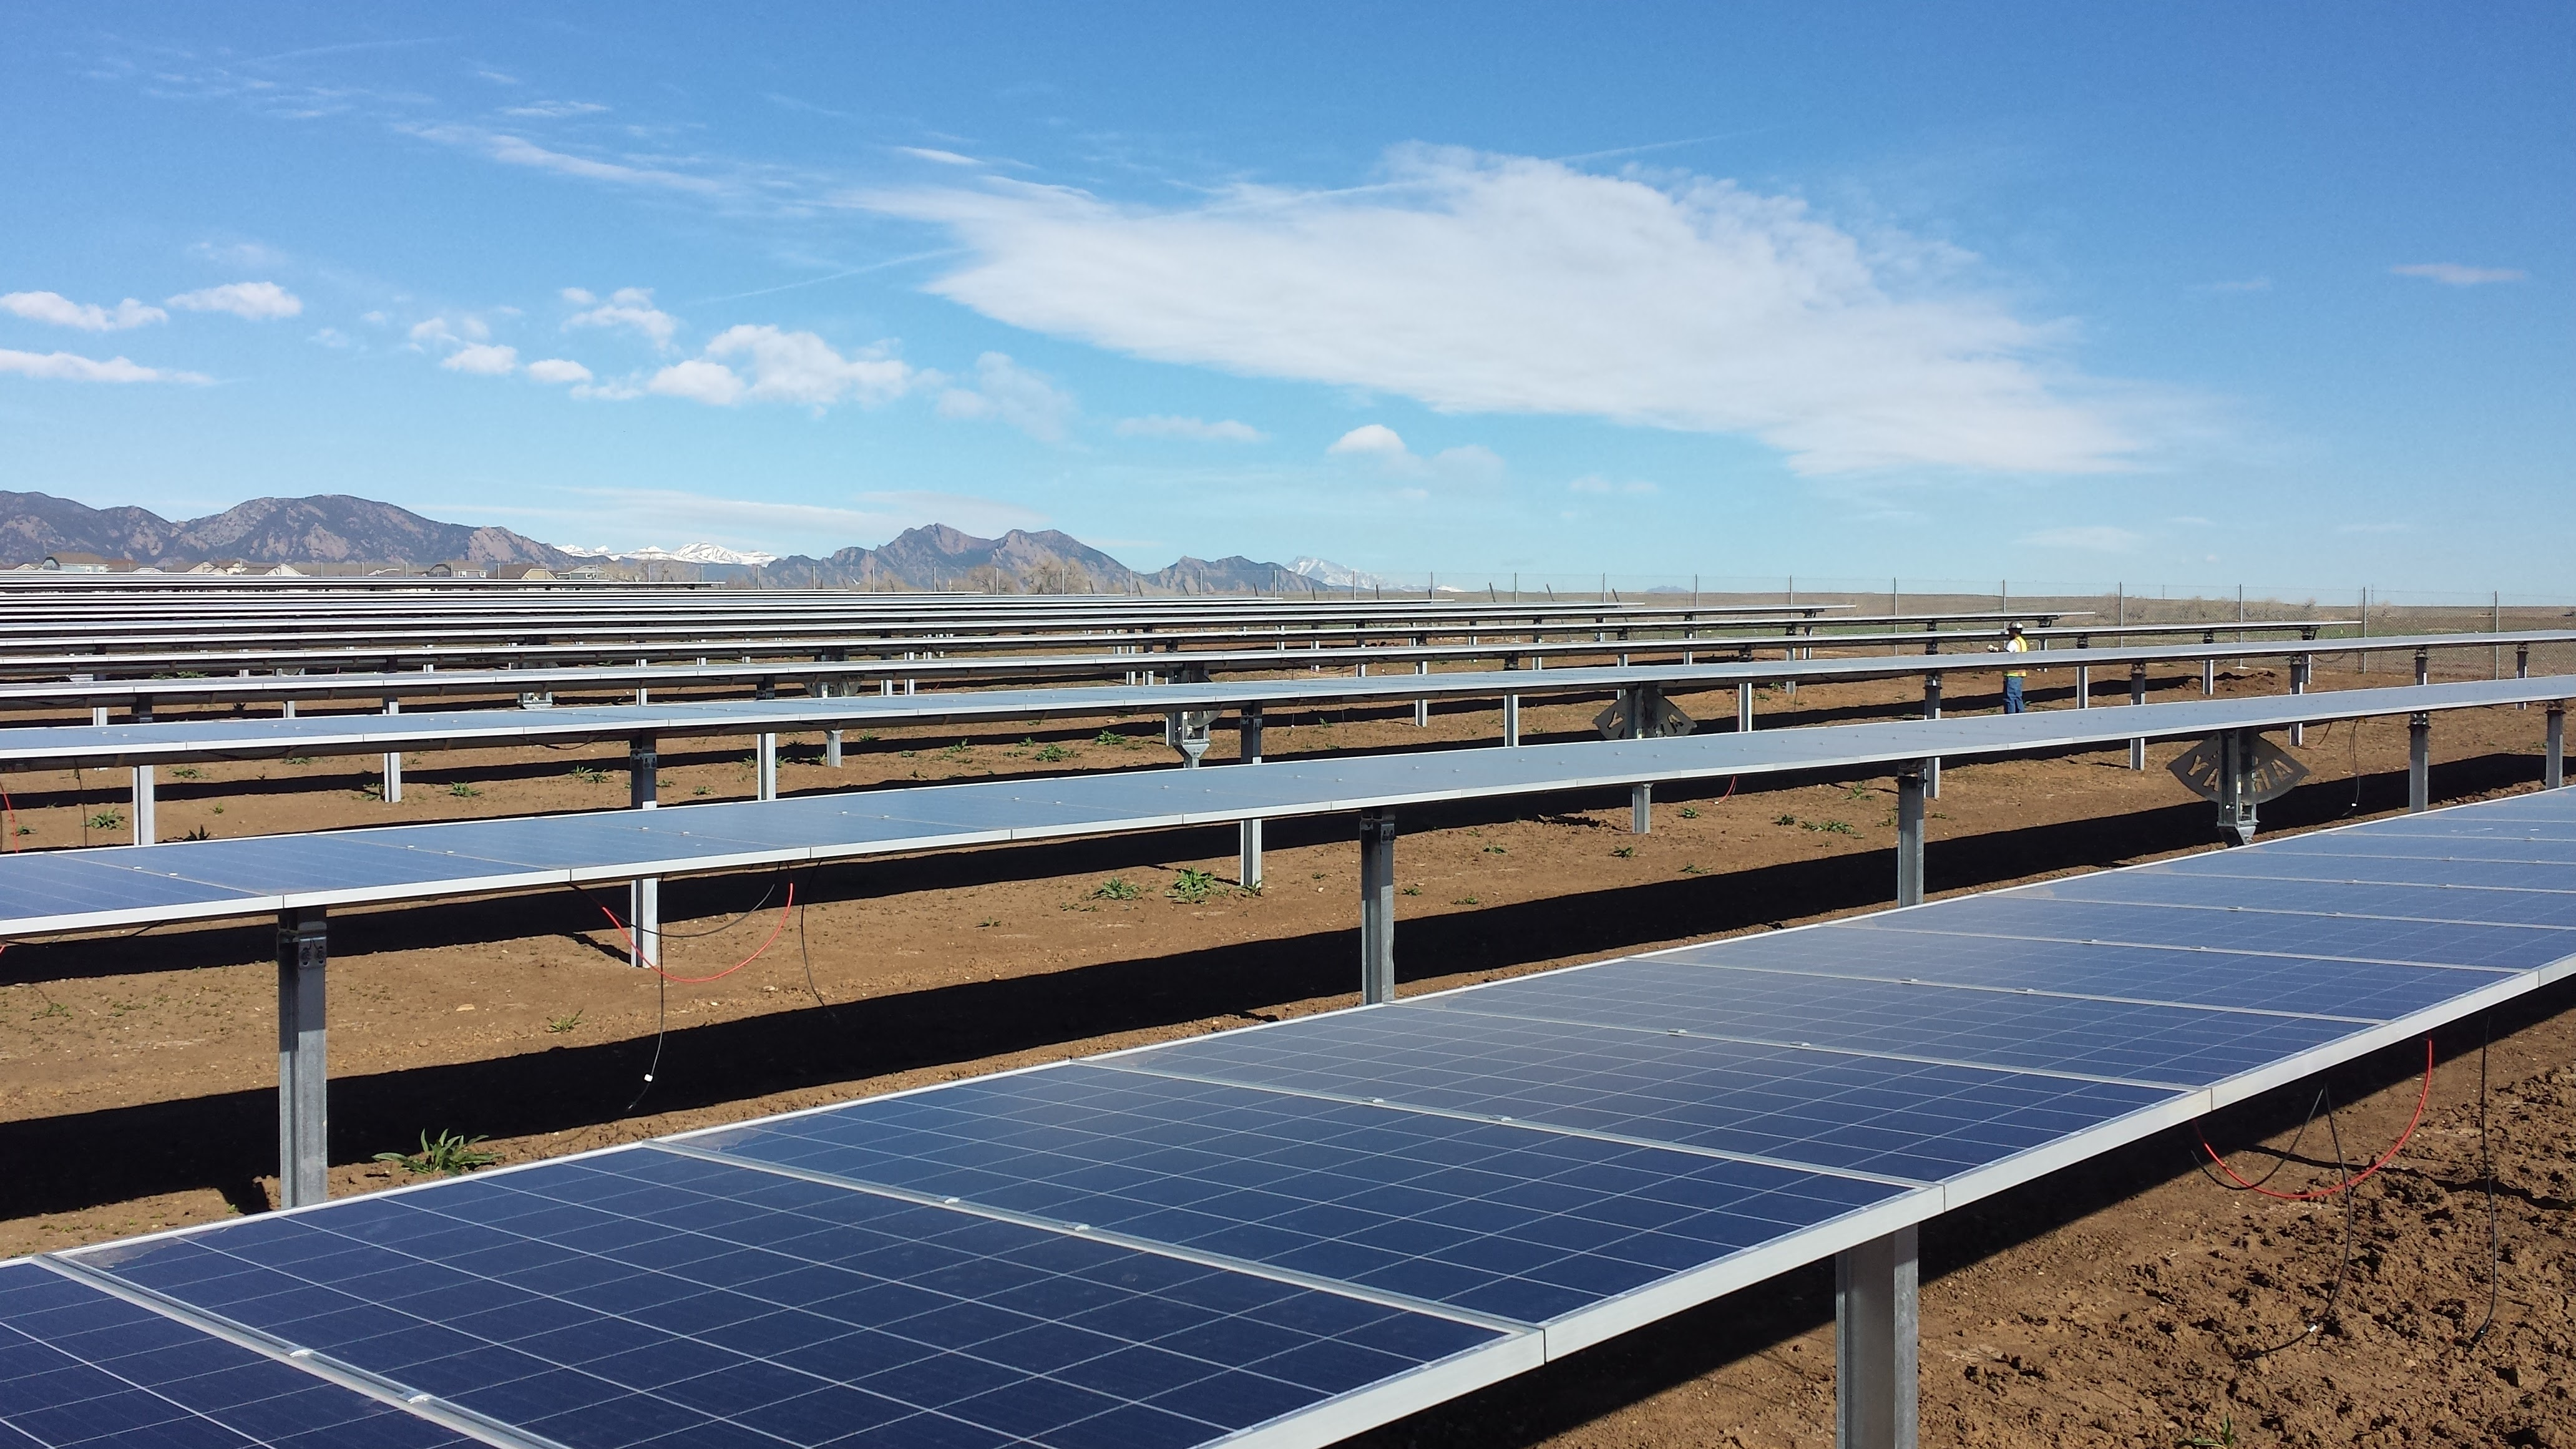 Rows of solar panels in front of mountains